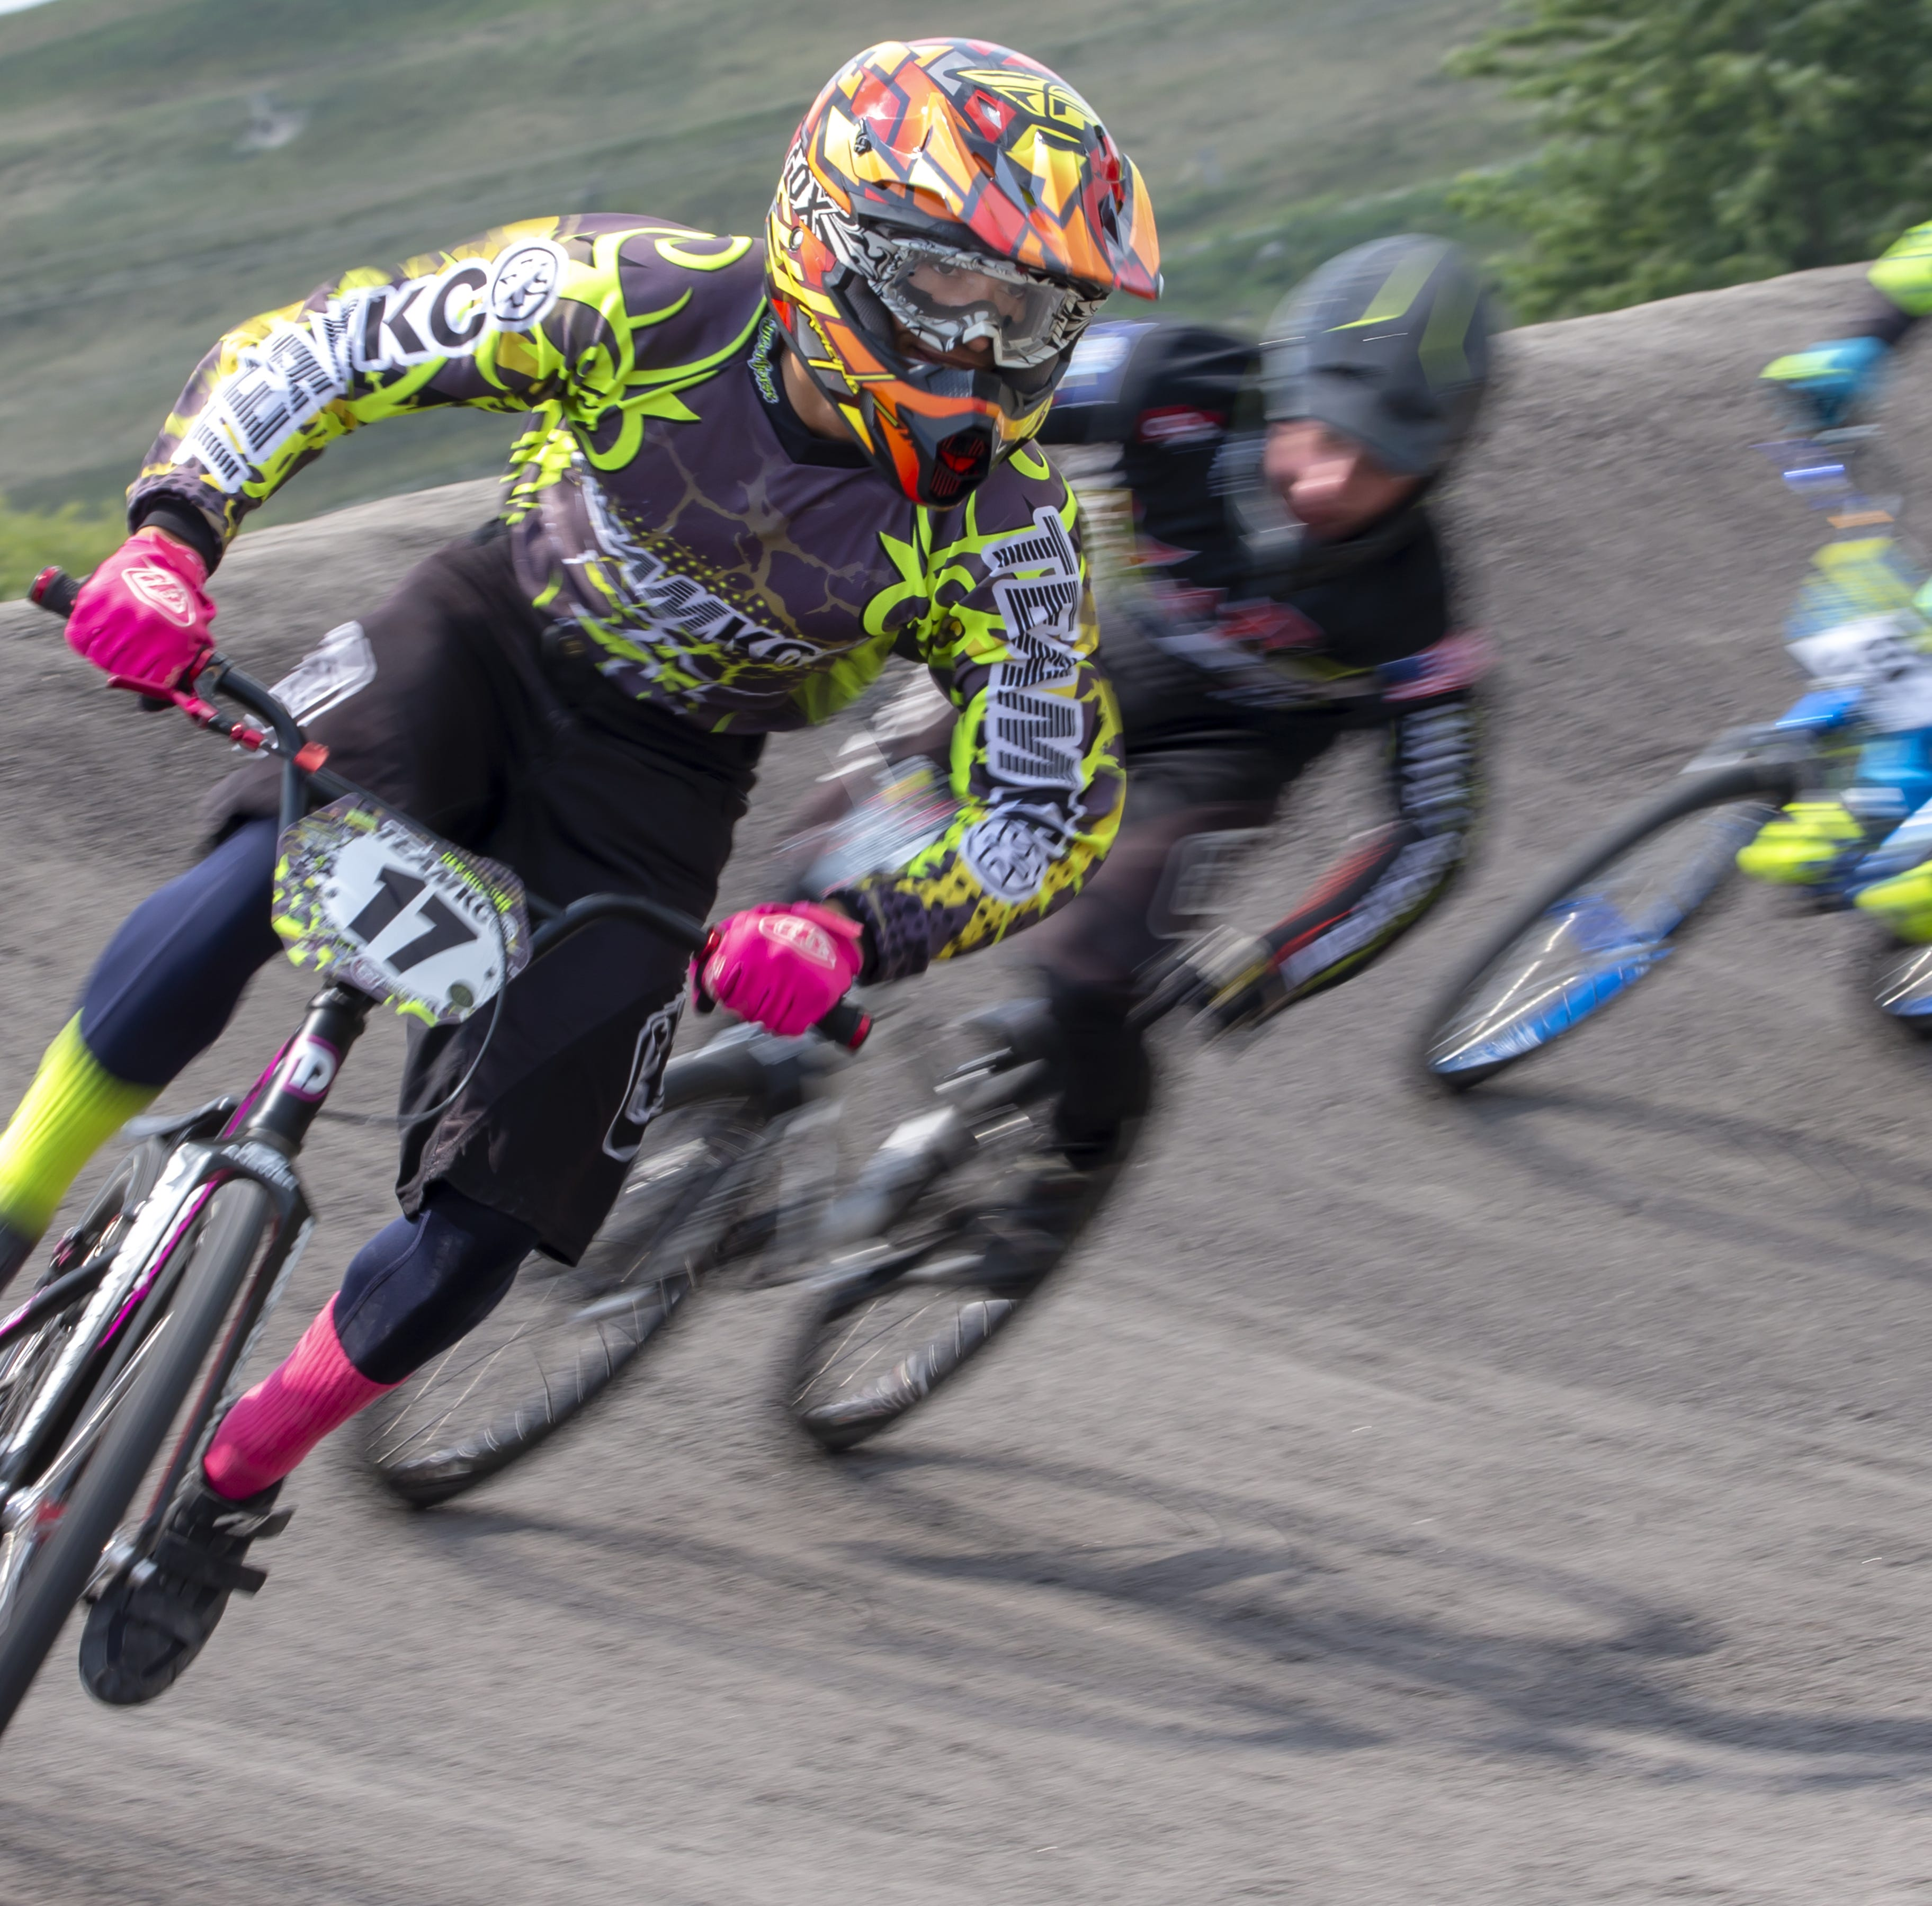 Competitors race at Winnebagoland BMX track in Oshkosh, Wisconsin, during the Wisconsin State Finals and Tangent ProAM on Sunday, August 19, 2018.